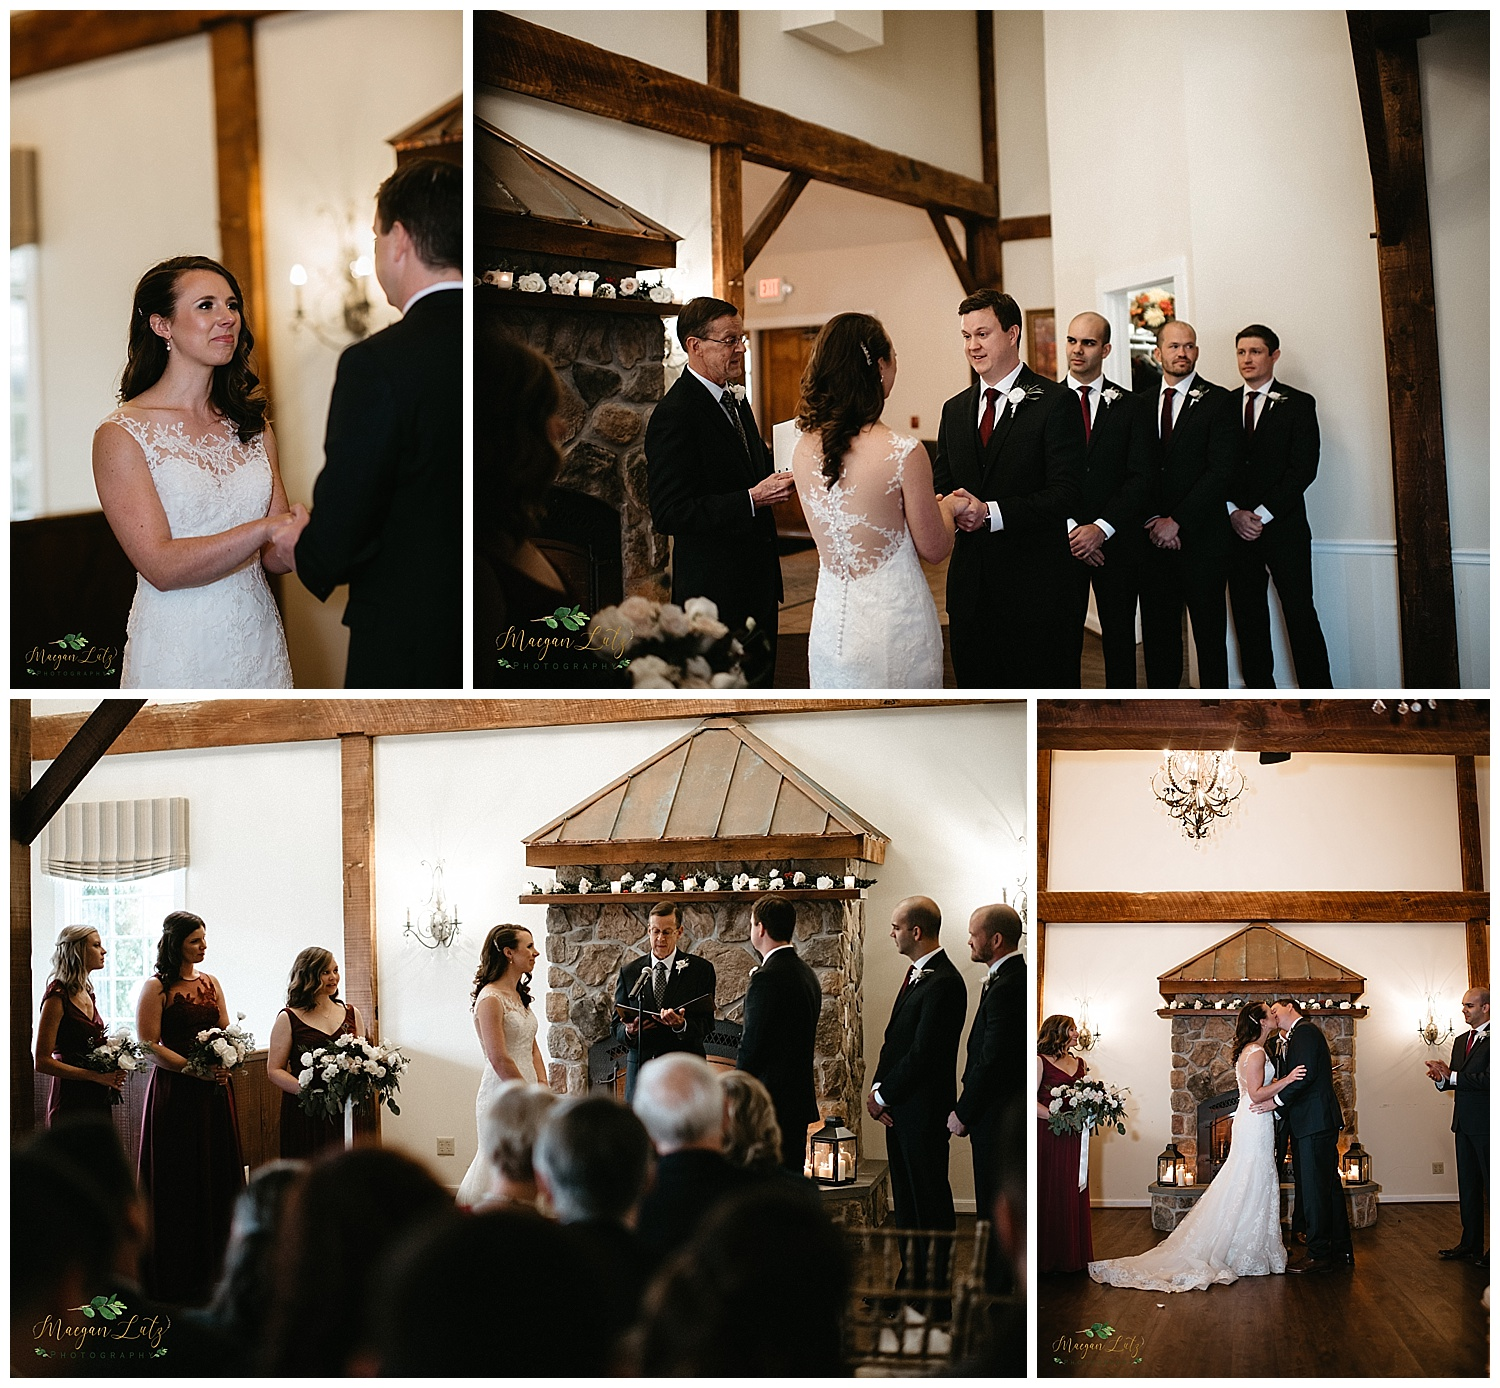 NEPA-wedding-photographer-at-Farmstead-Golf-and-country-club-LaFayette-Township-New-Jersey_0048.jpg